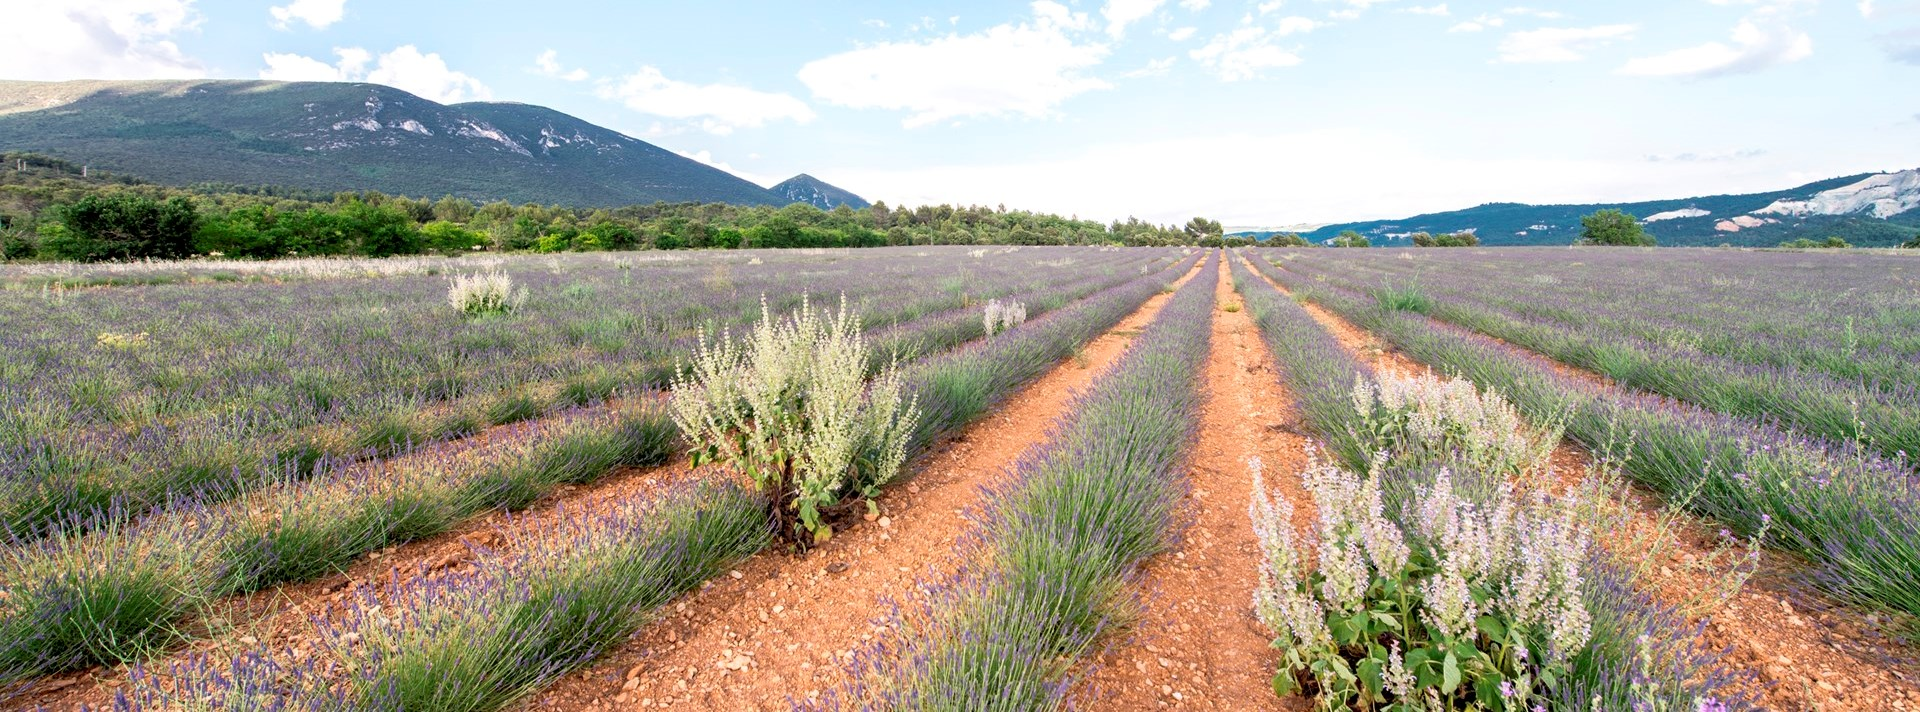 lavender-fields-provence-france